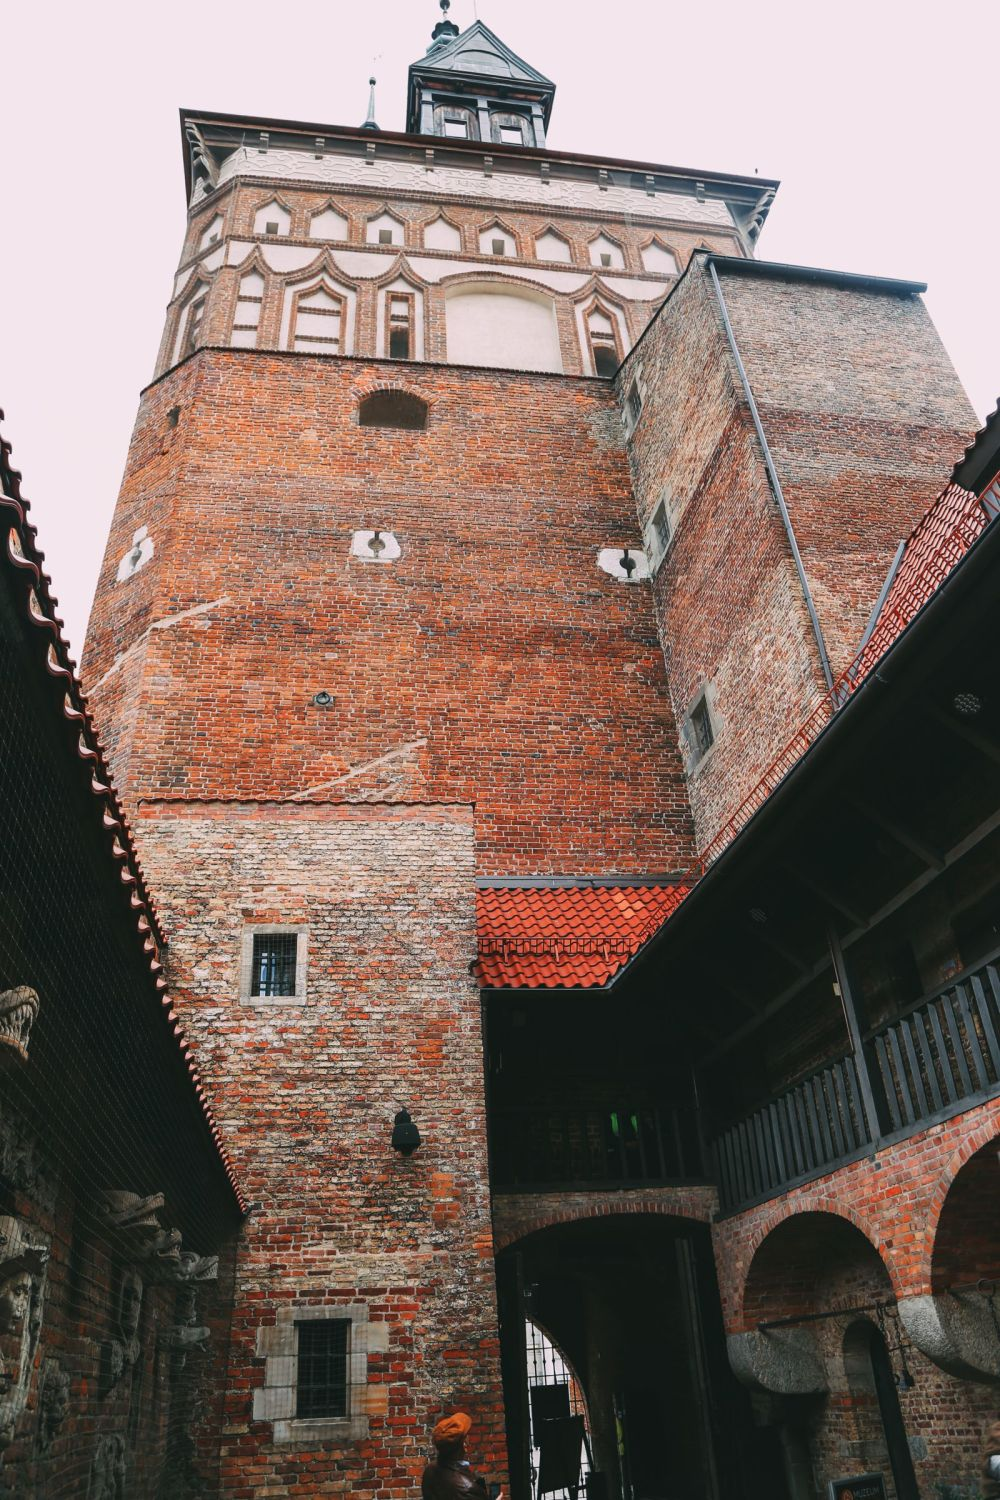 The Beautiful Old Town Of Gdansk In Poland | PART 2 (11)